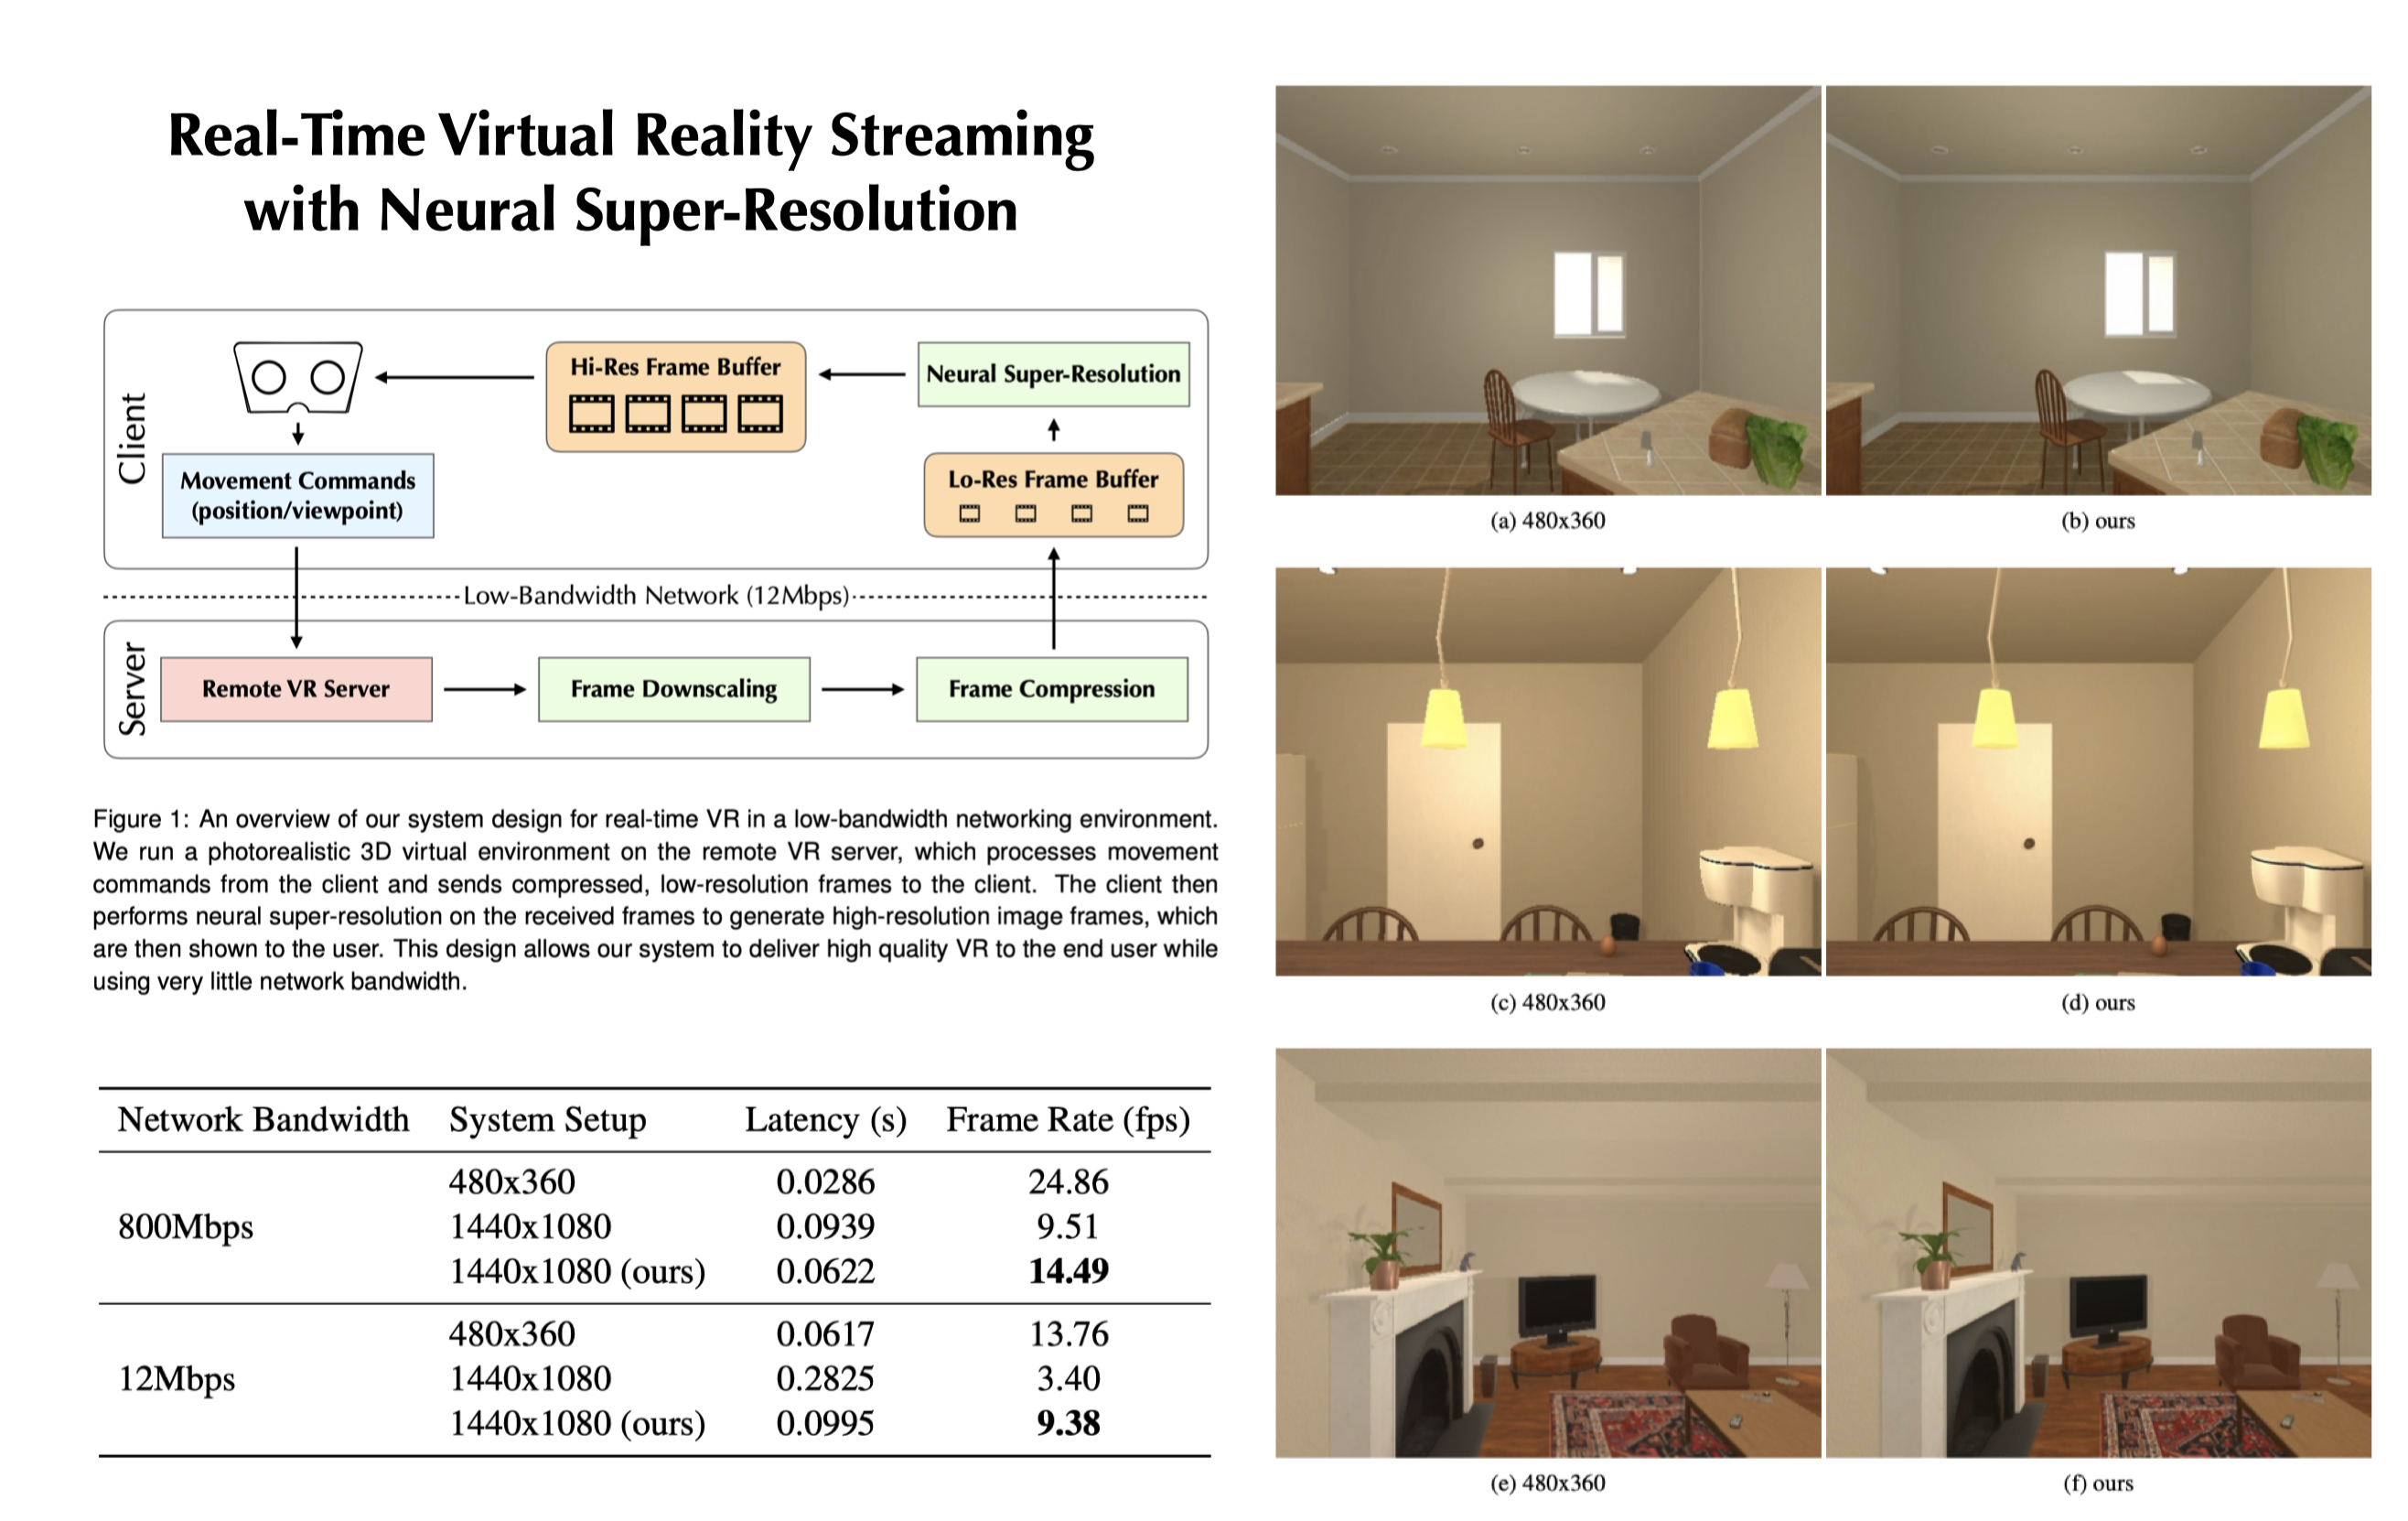 Real-Time Virtual Reality Streaming with Neural Super-Resolution